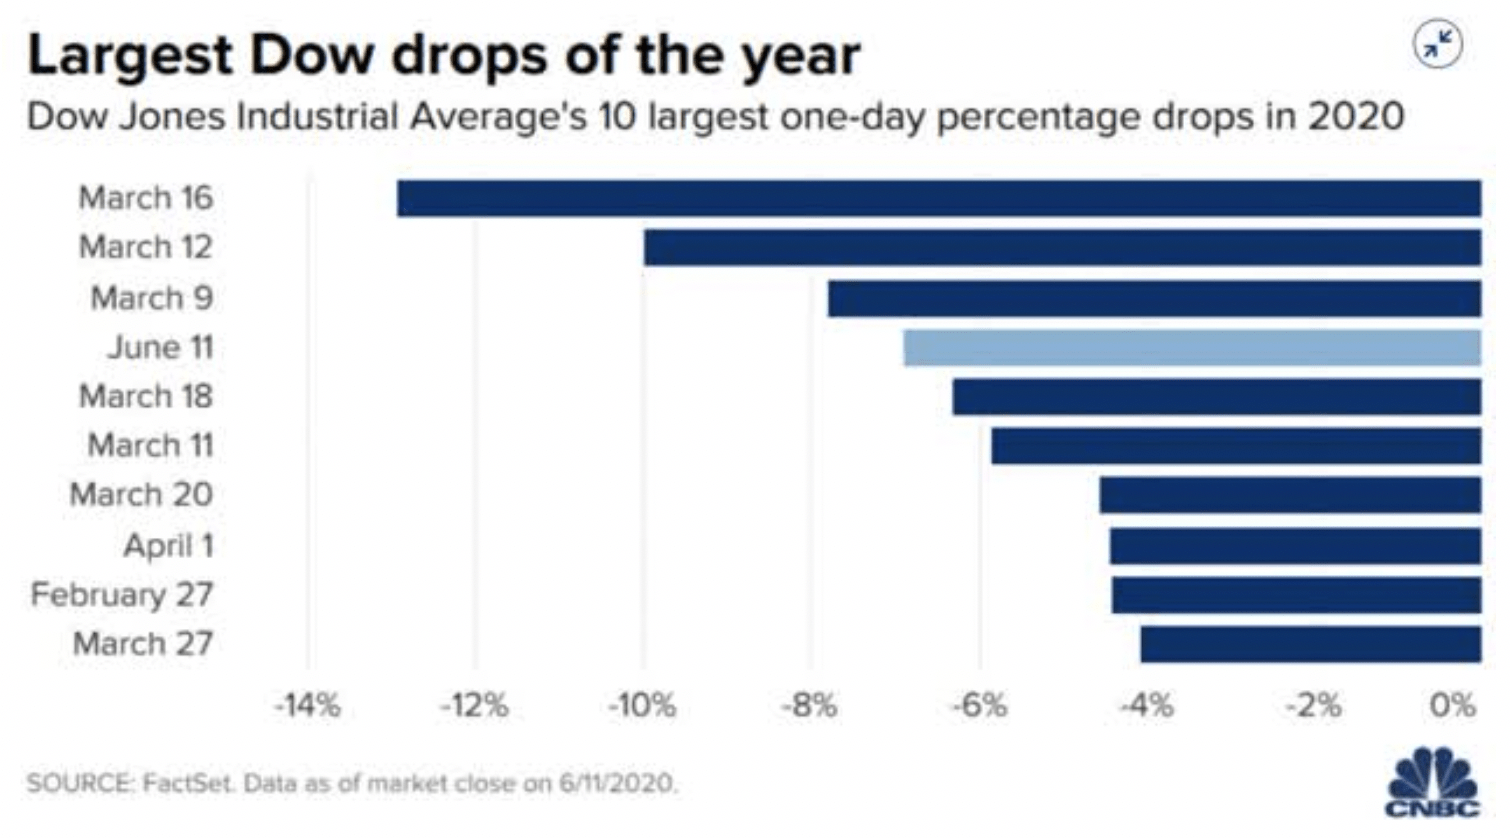 DOW drops of the year